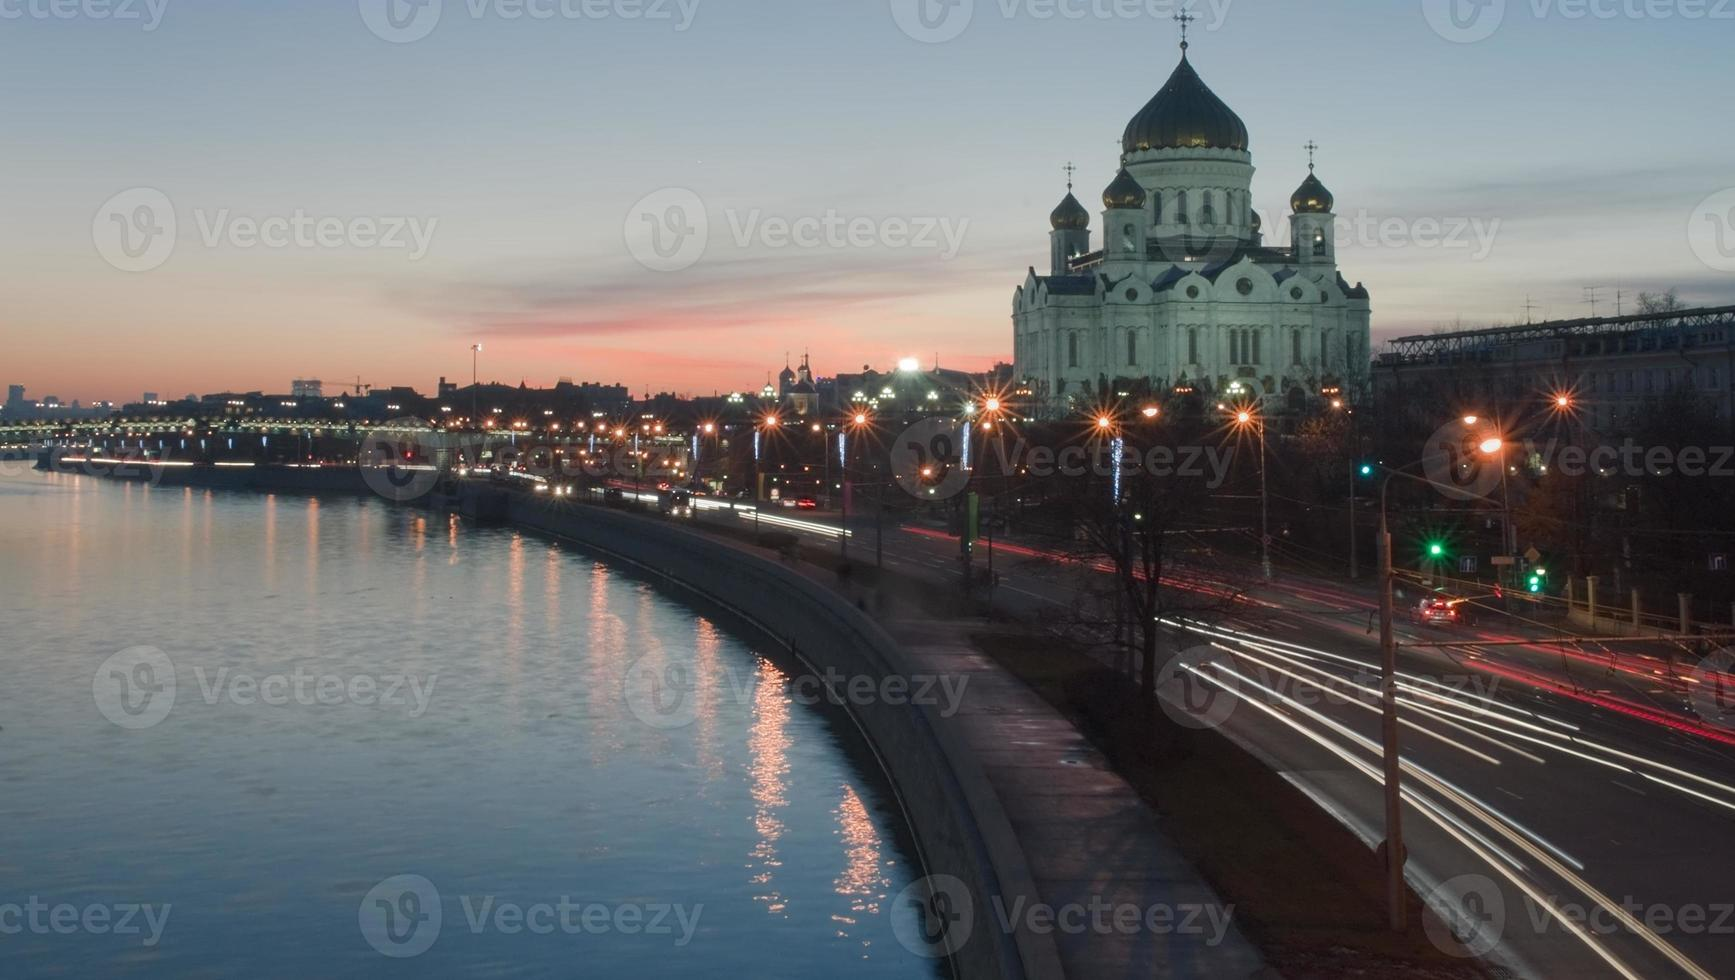 Moscow at sunset photo